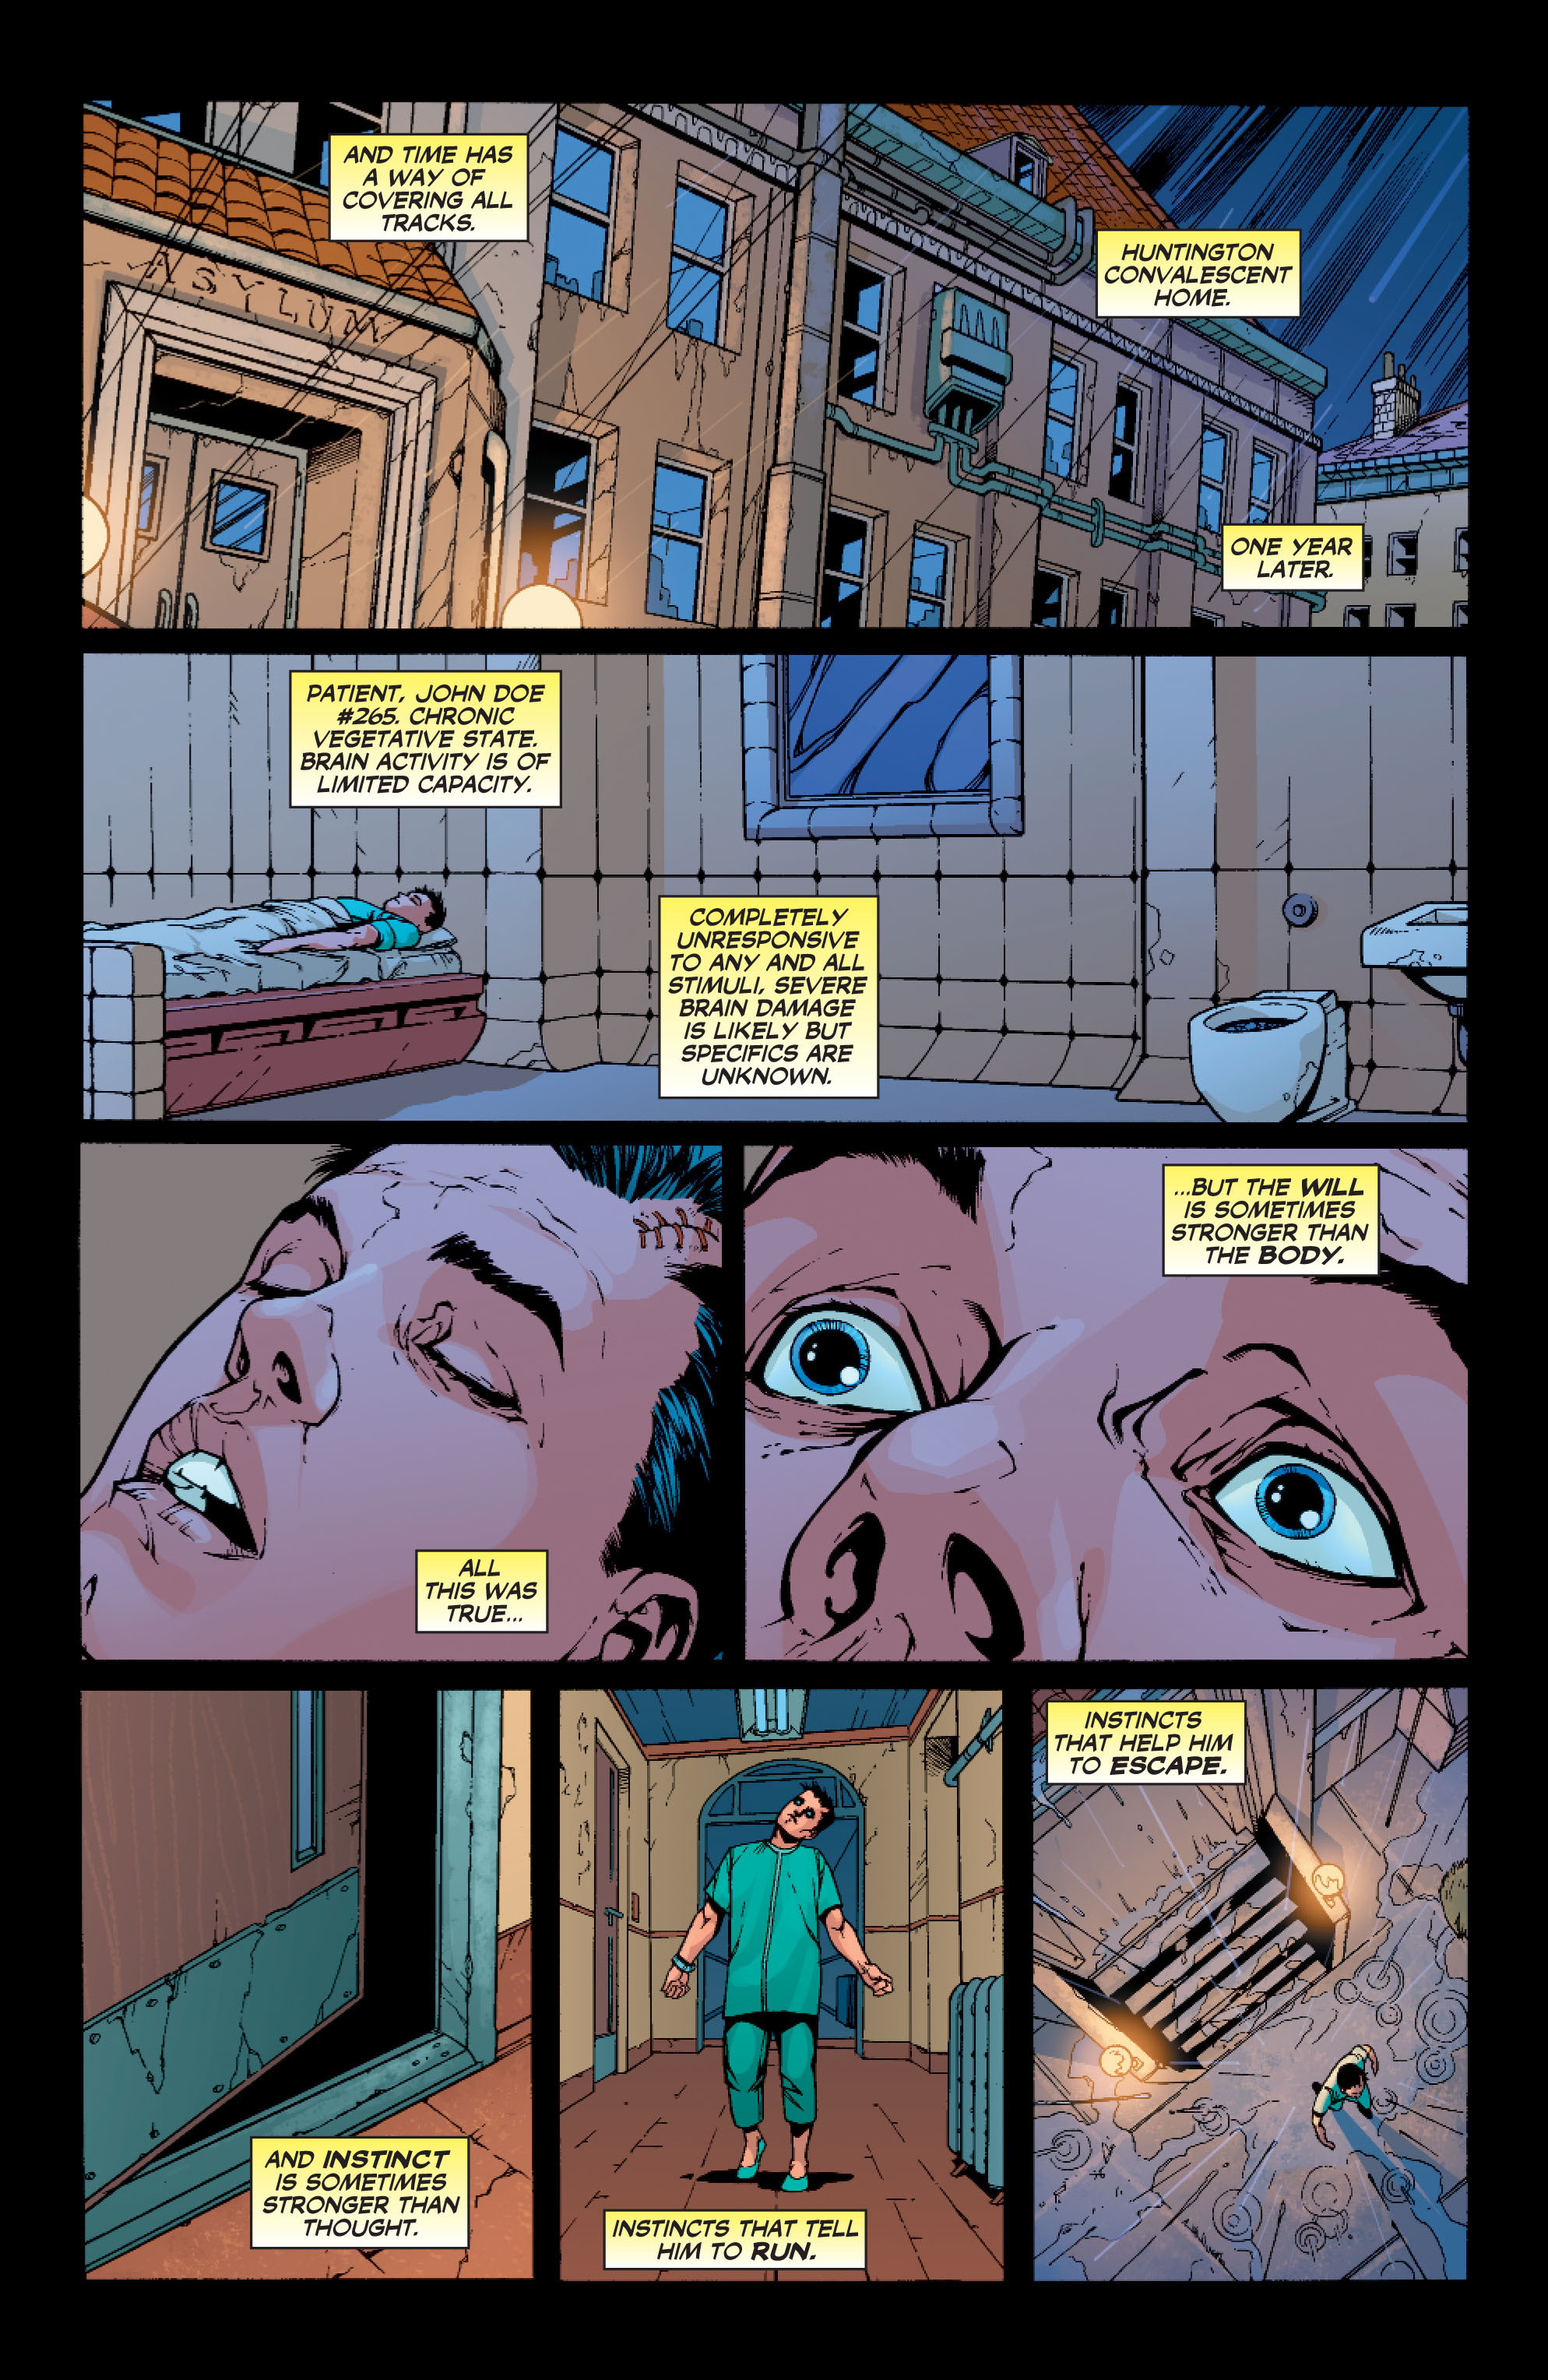 Read online Batman: Under The Red Hood comic -  Issue # Full - 336